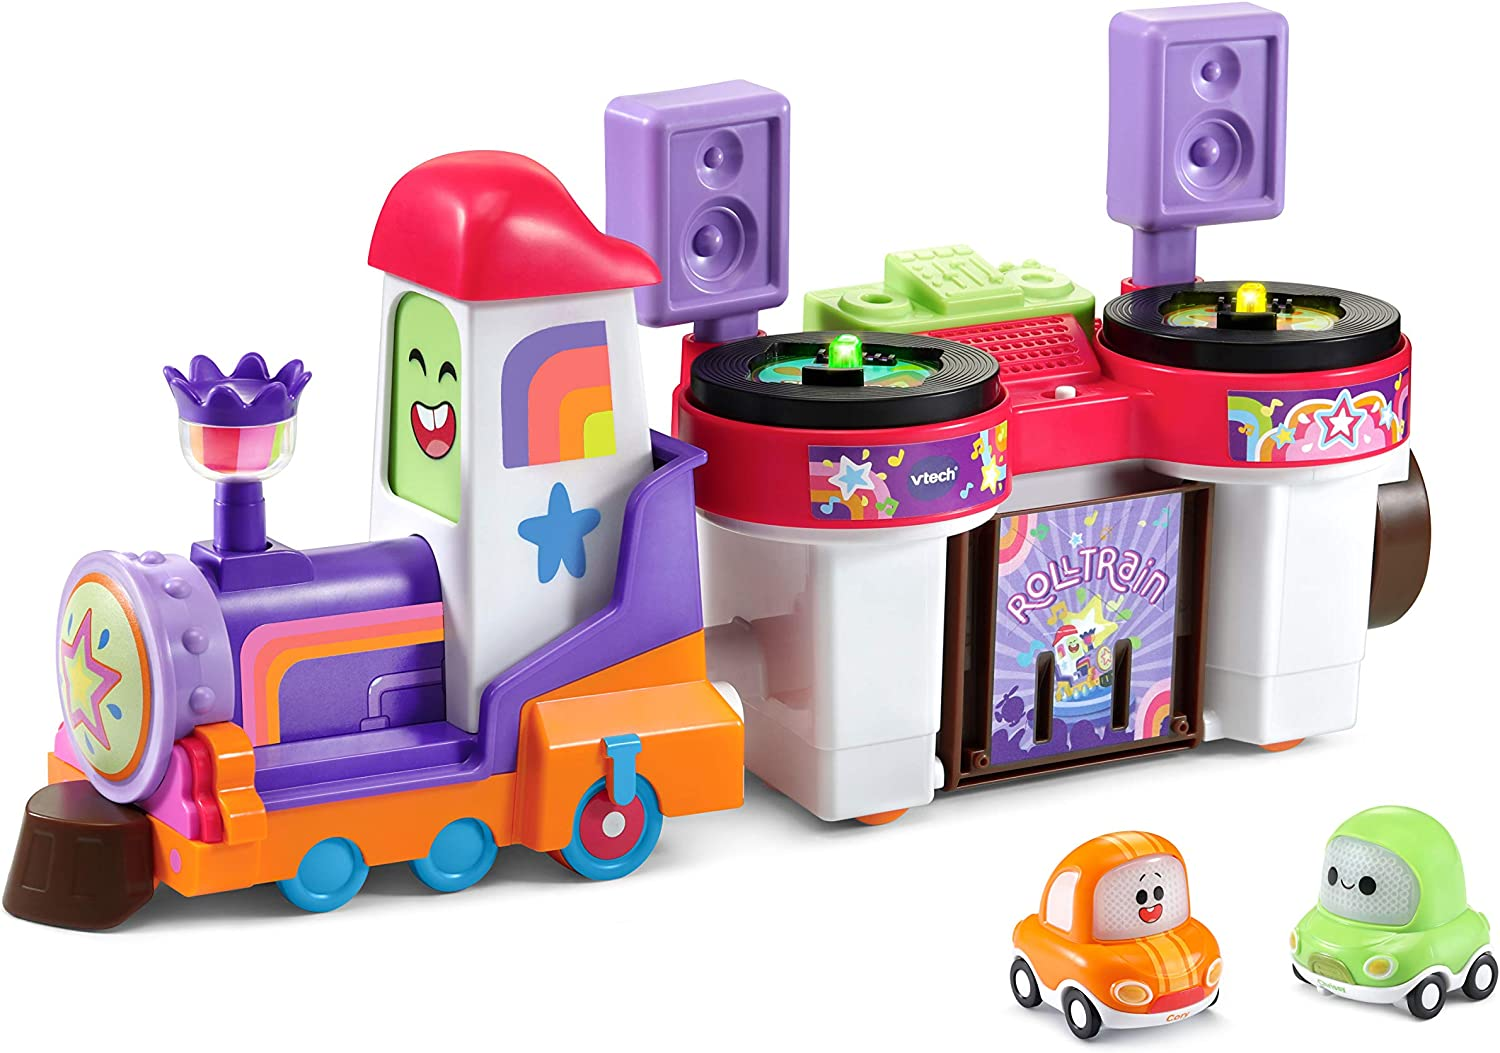 Vtech Toot-Toot Cory Carson-Playzone Freddie /& HALLE Mini Duo véhicules